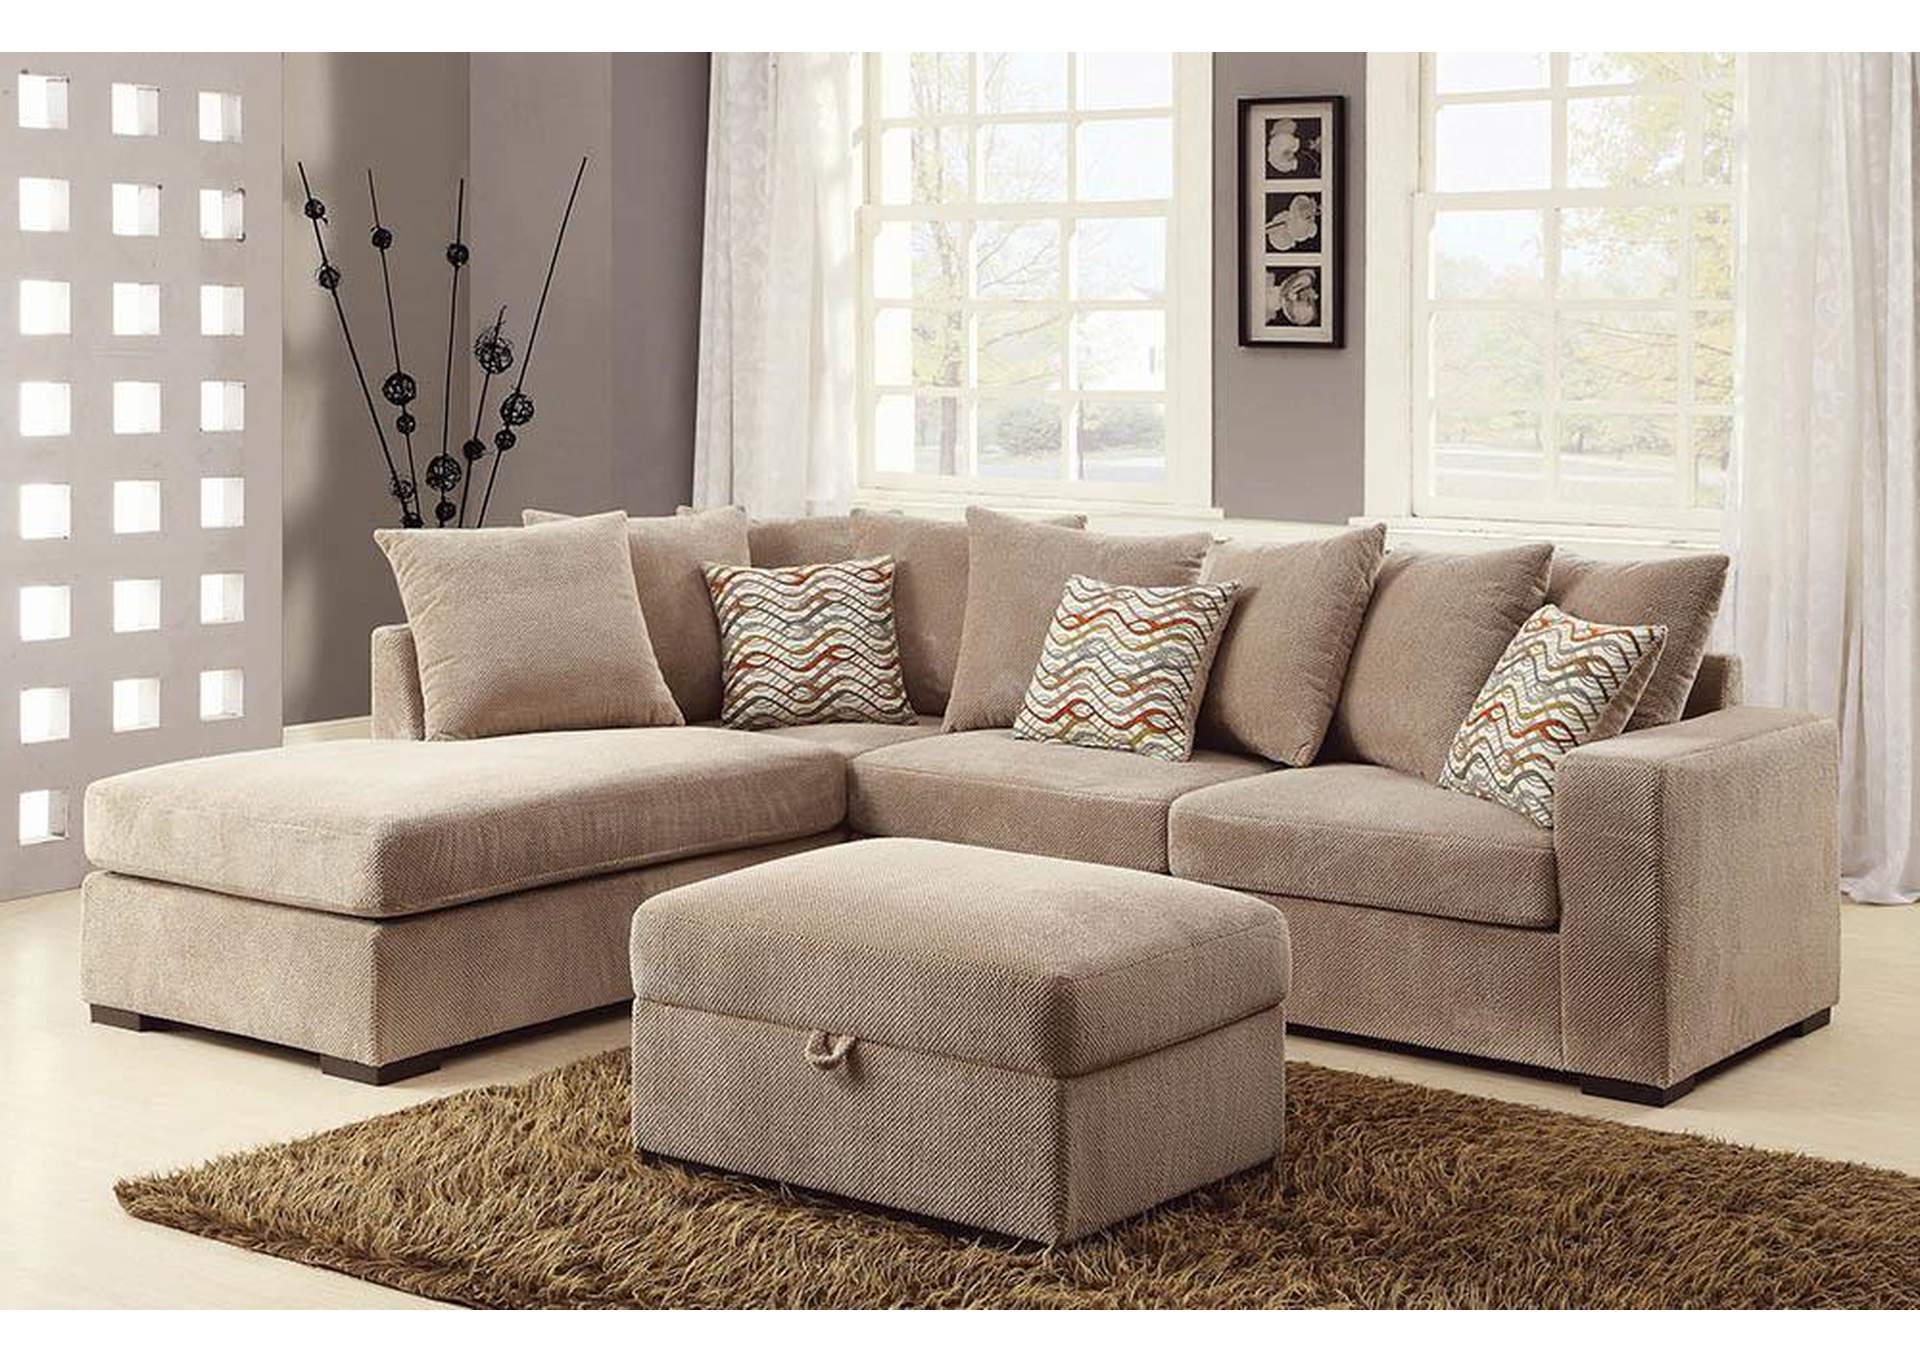 Taupe Sectional,Coaster Furniture